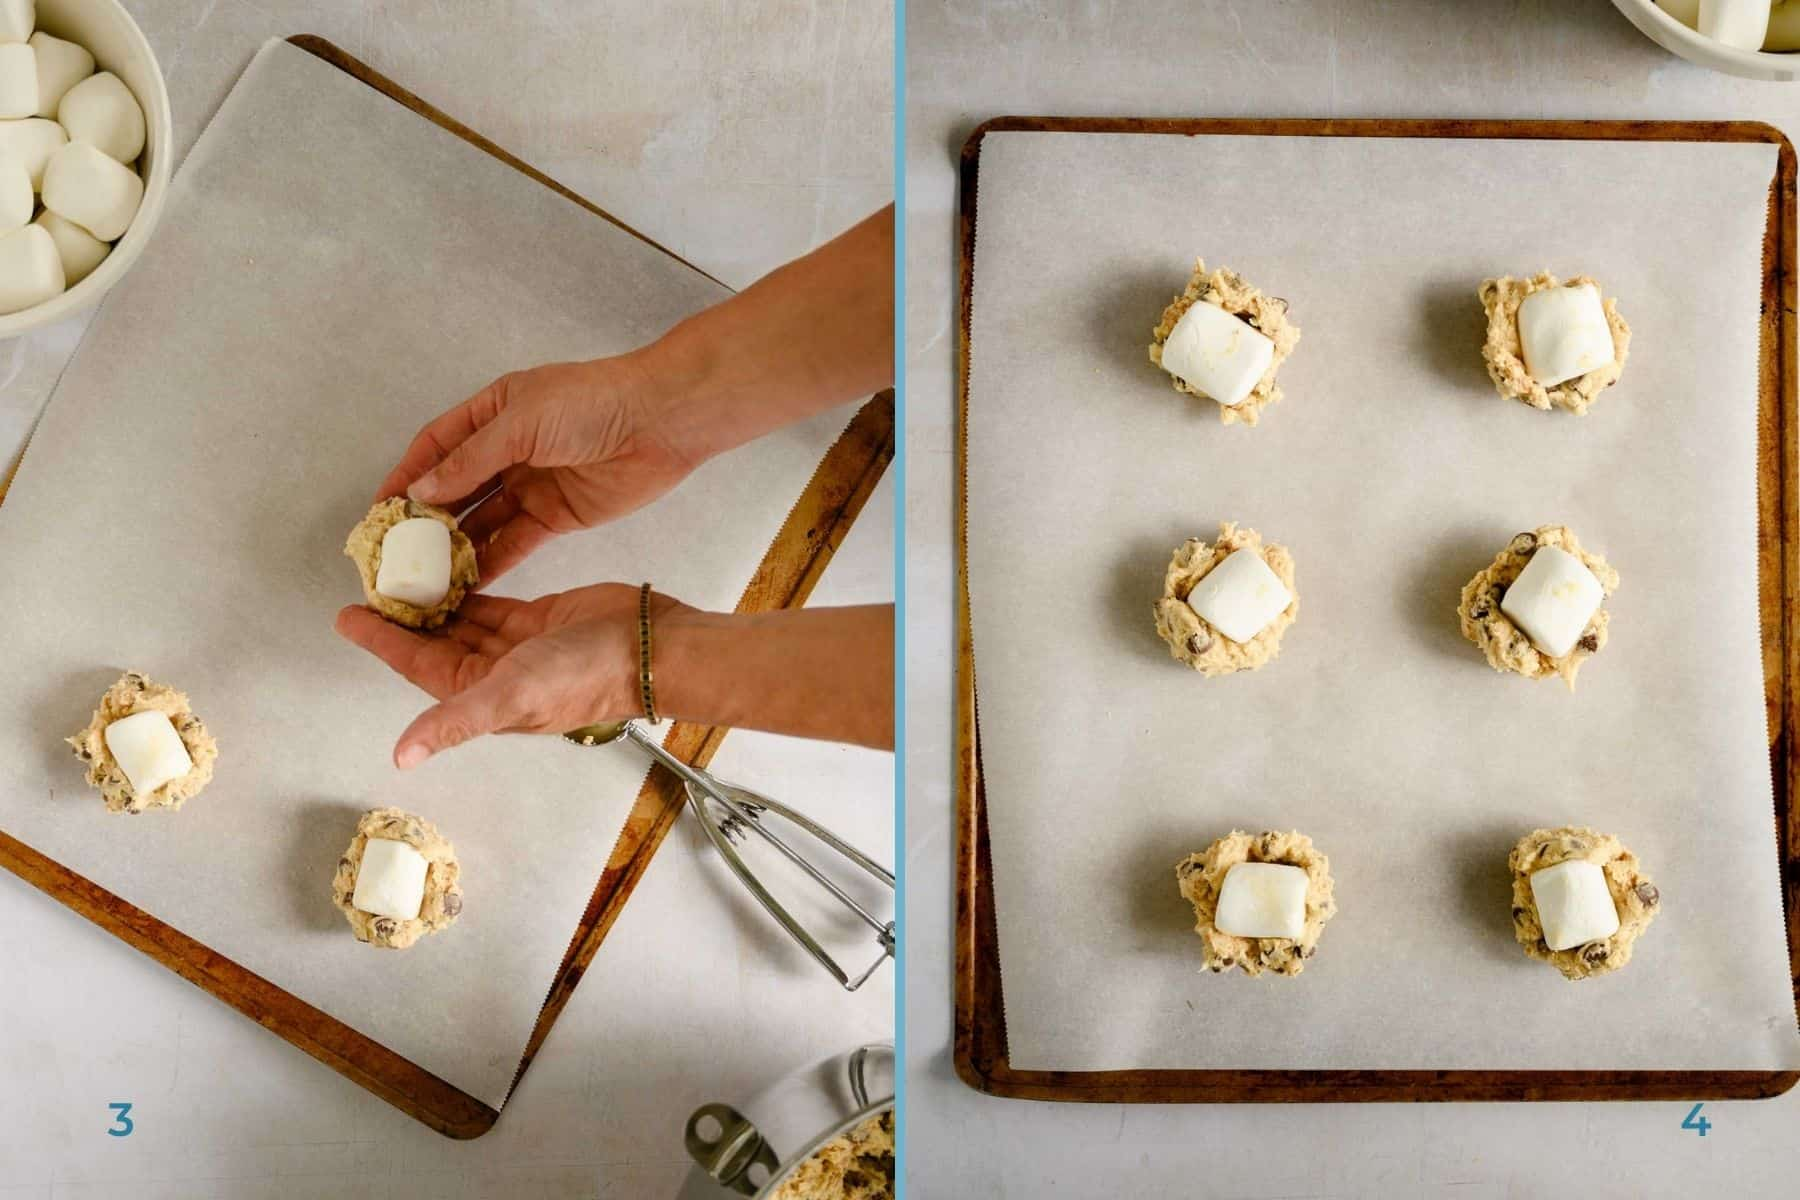 hands forming cookie dough around a marshmallow and a tray of marshmallow topped cookie dough